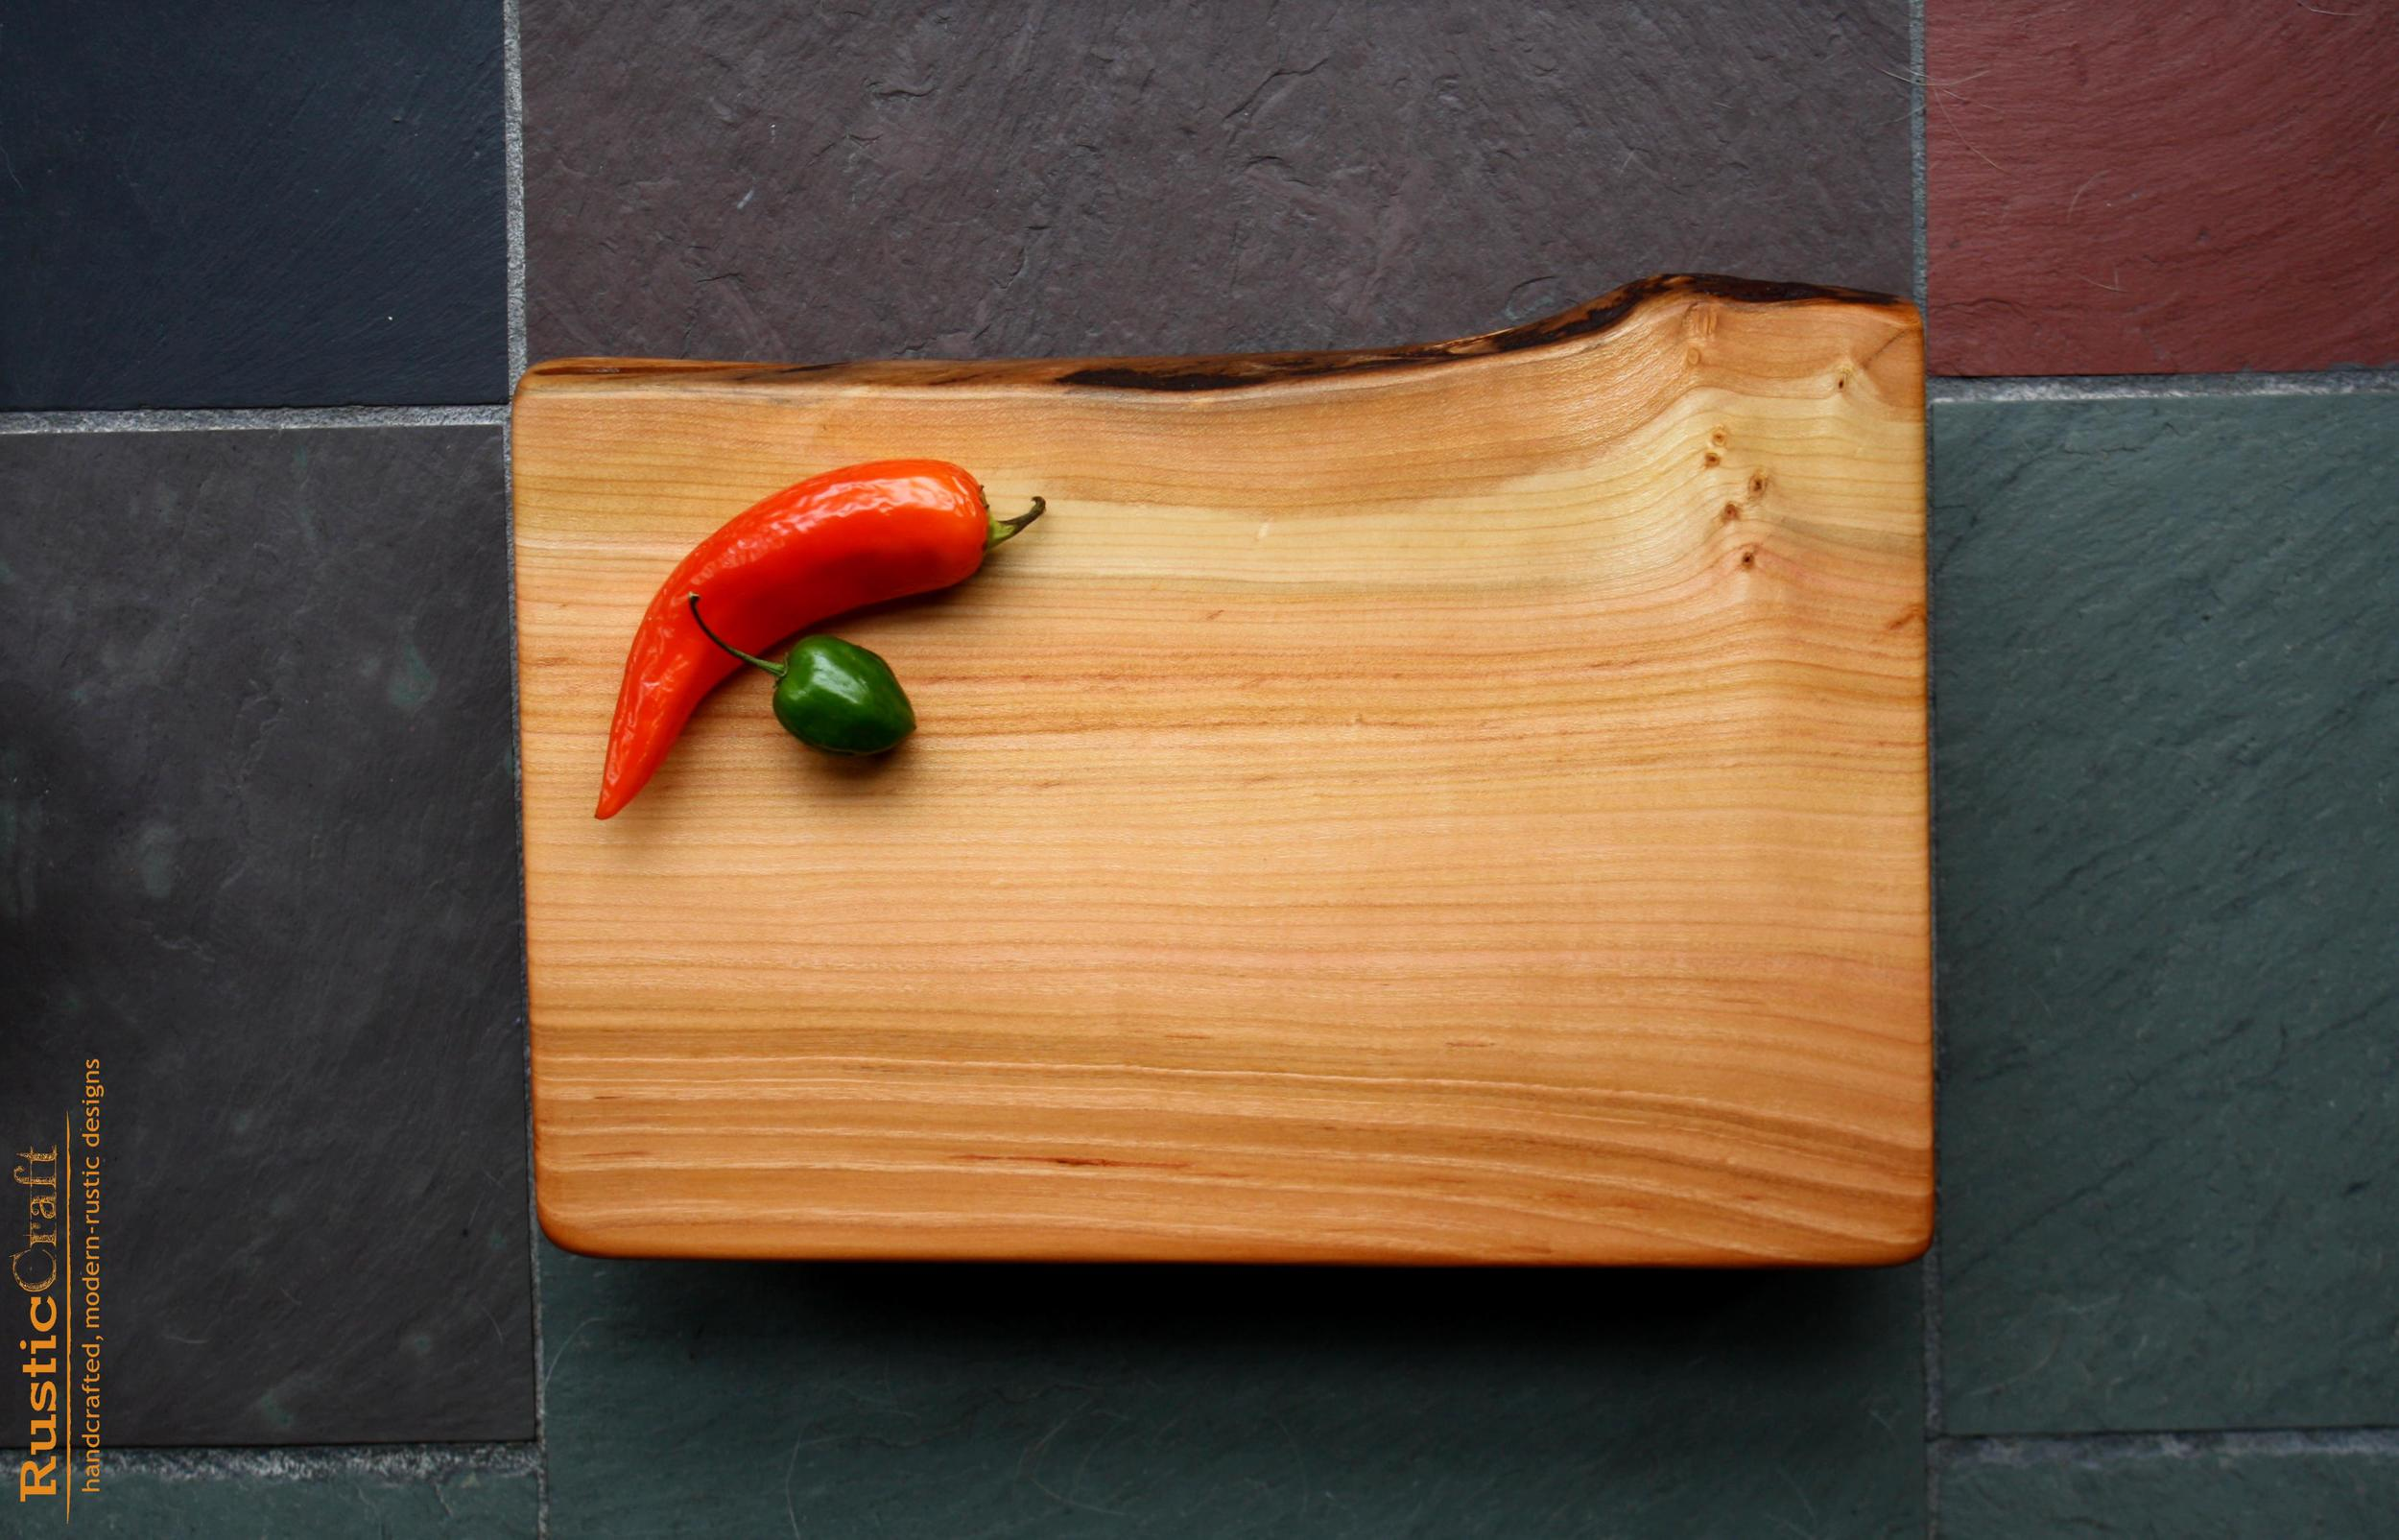 Personalized Cutting Board- Organic Shape Birdseye Black Cherry- Add Hand engraving- Handcrafted Rustic Beeswax finish 483